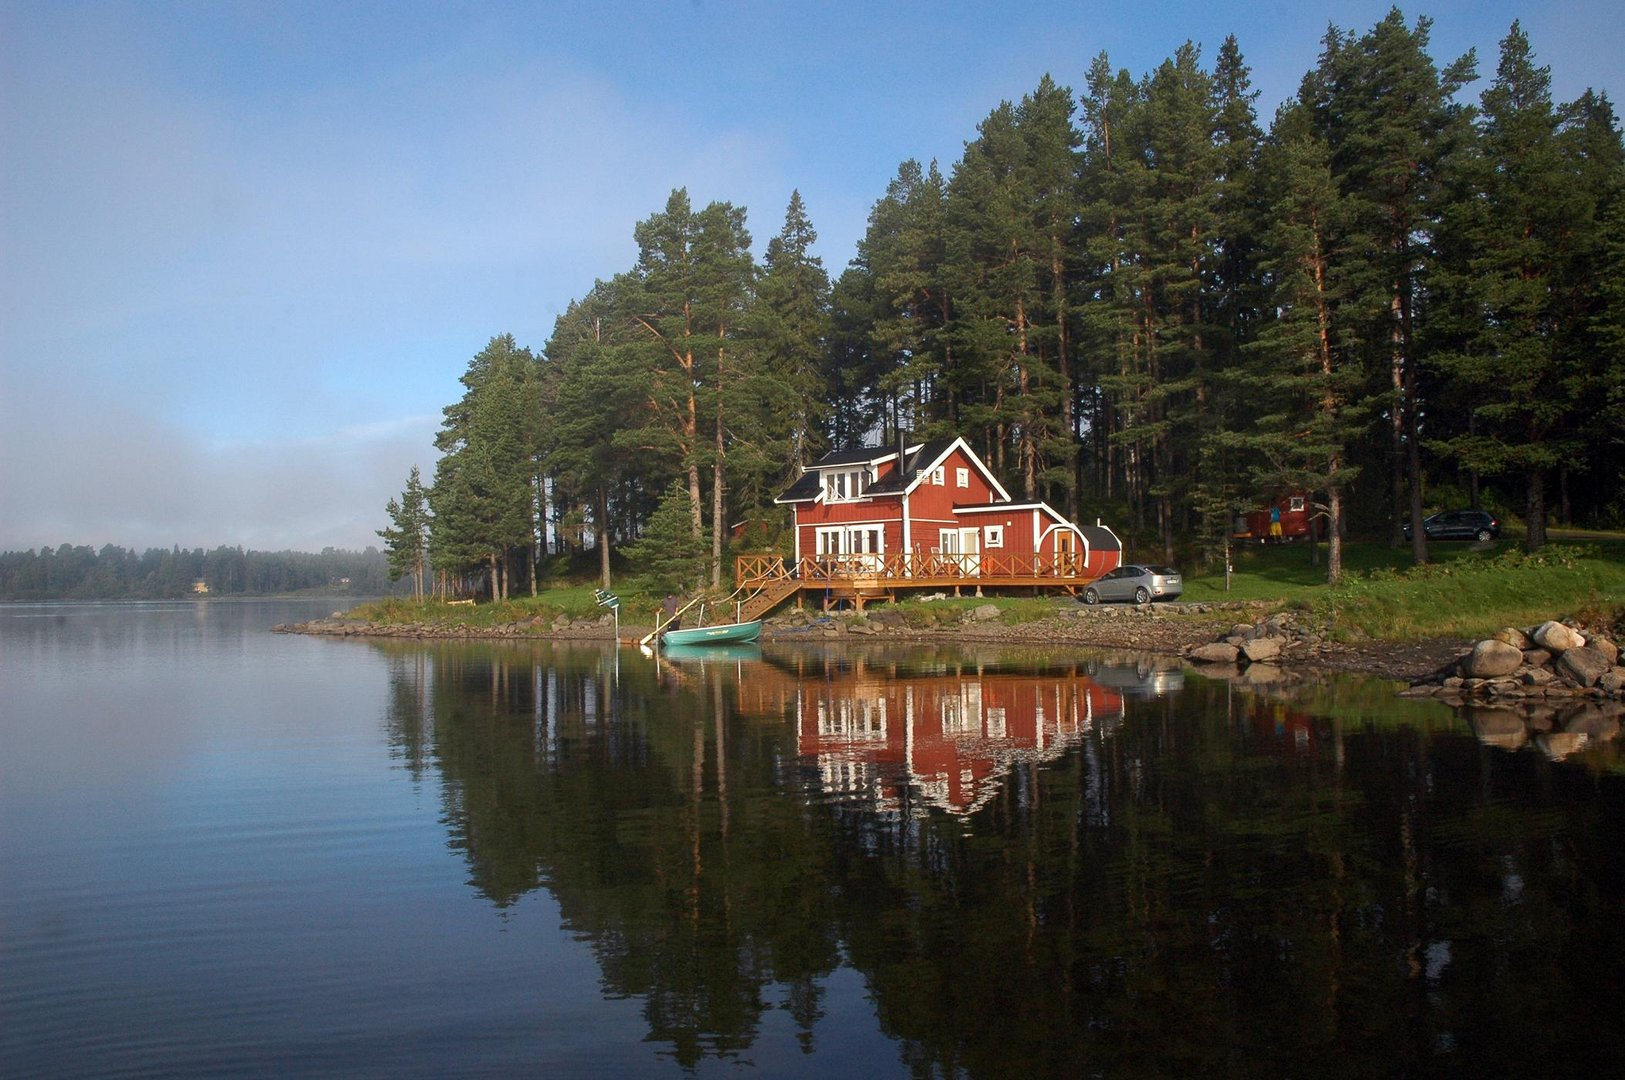 haus am see foto bild europe scandinavia sweden bilder auf fotocommunity. Black Bedroom Furniture Sets. Home Design Ideas